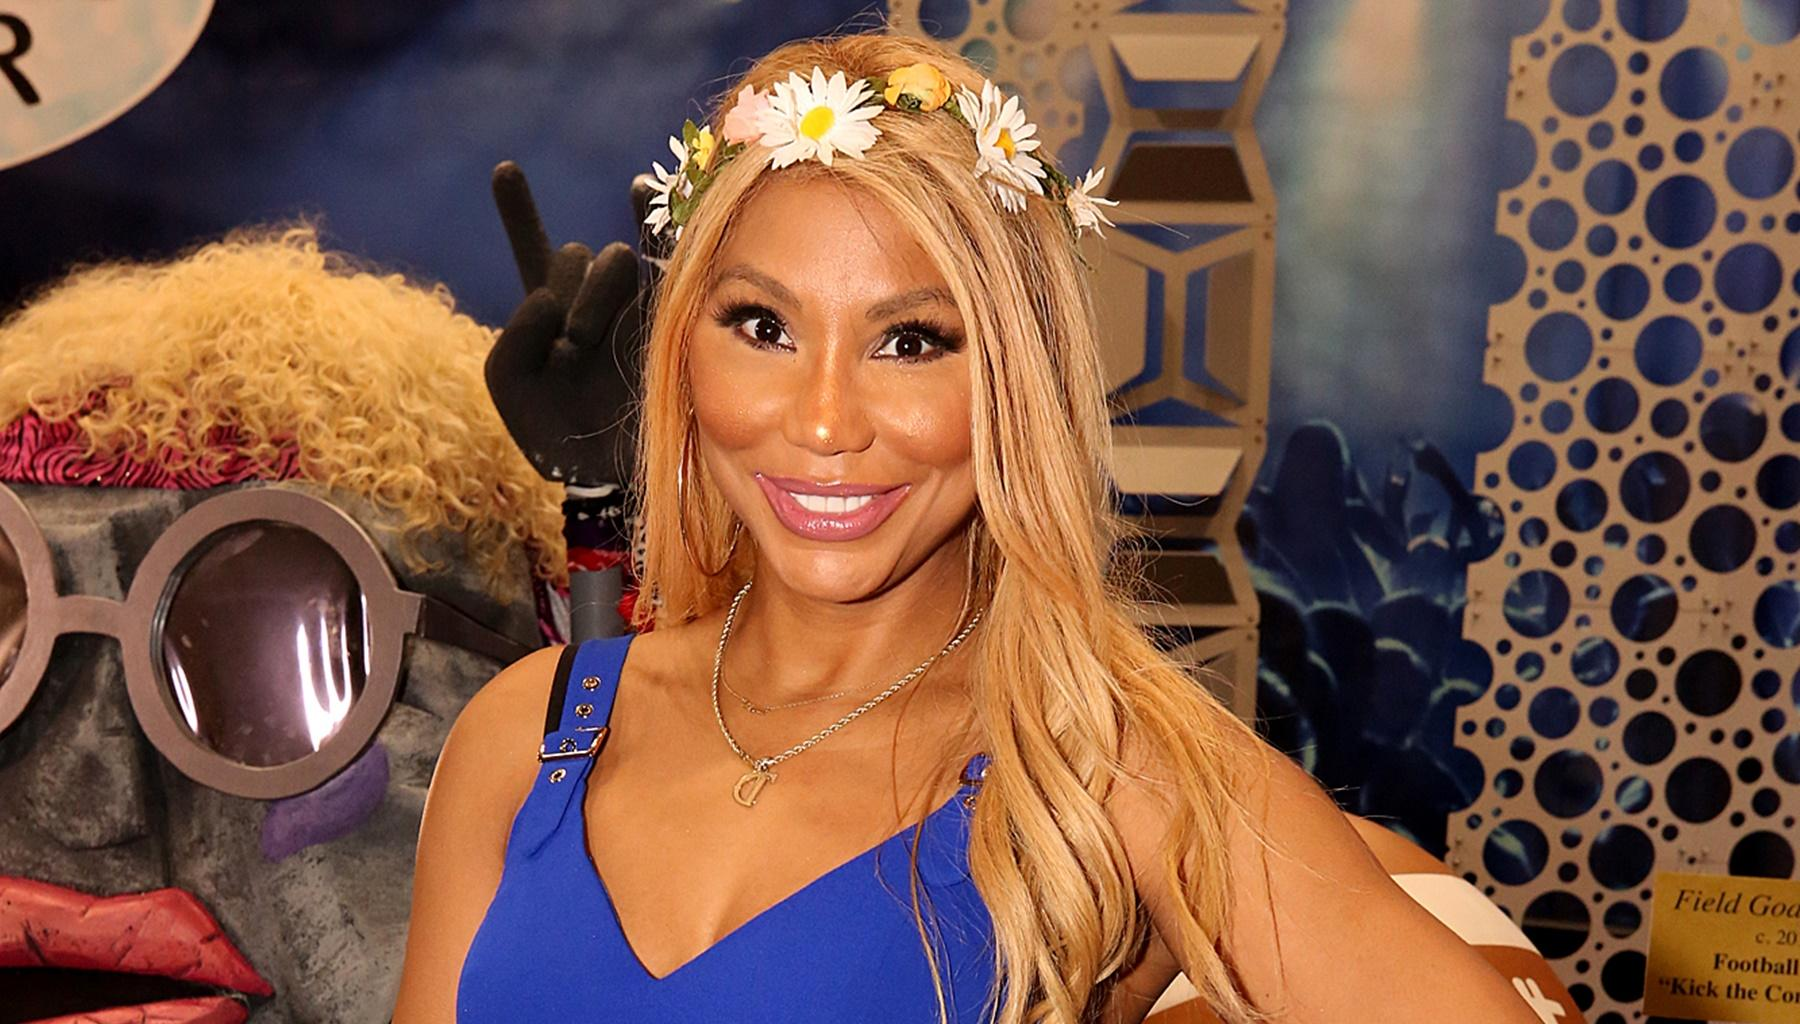 Tamar Braxton's Boyfriend, David Adefeso, Said 'She Has A Face Like An Angel And Body Like A Dungeon Mistress' After She Posted This Eye-Popping Video